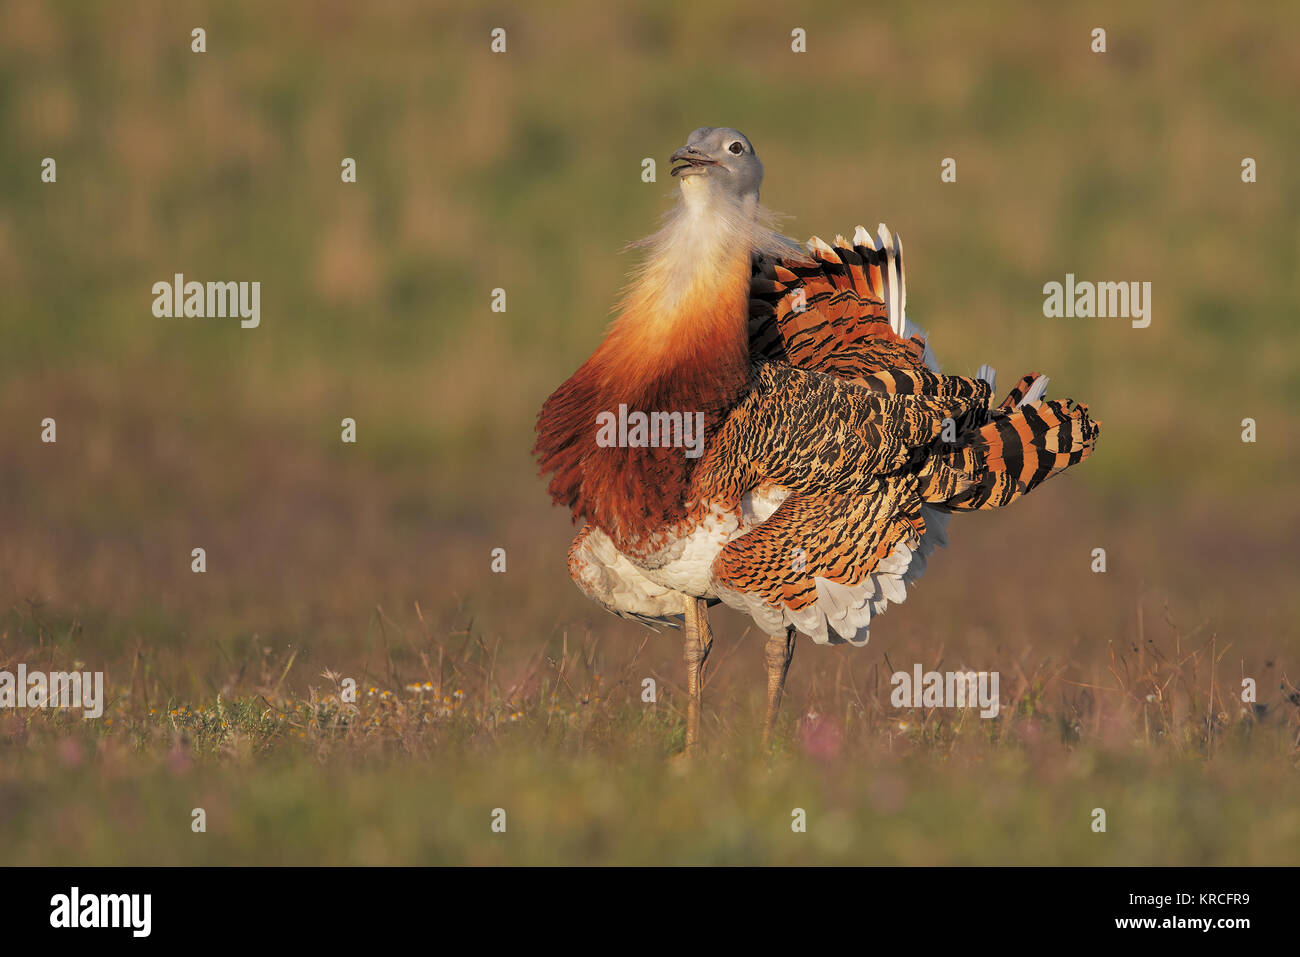 Great bustard - Stock Image